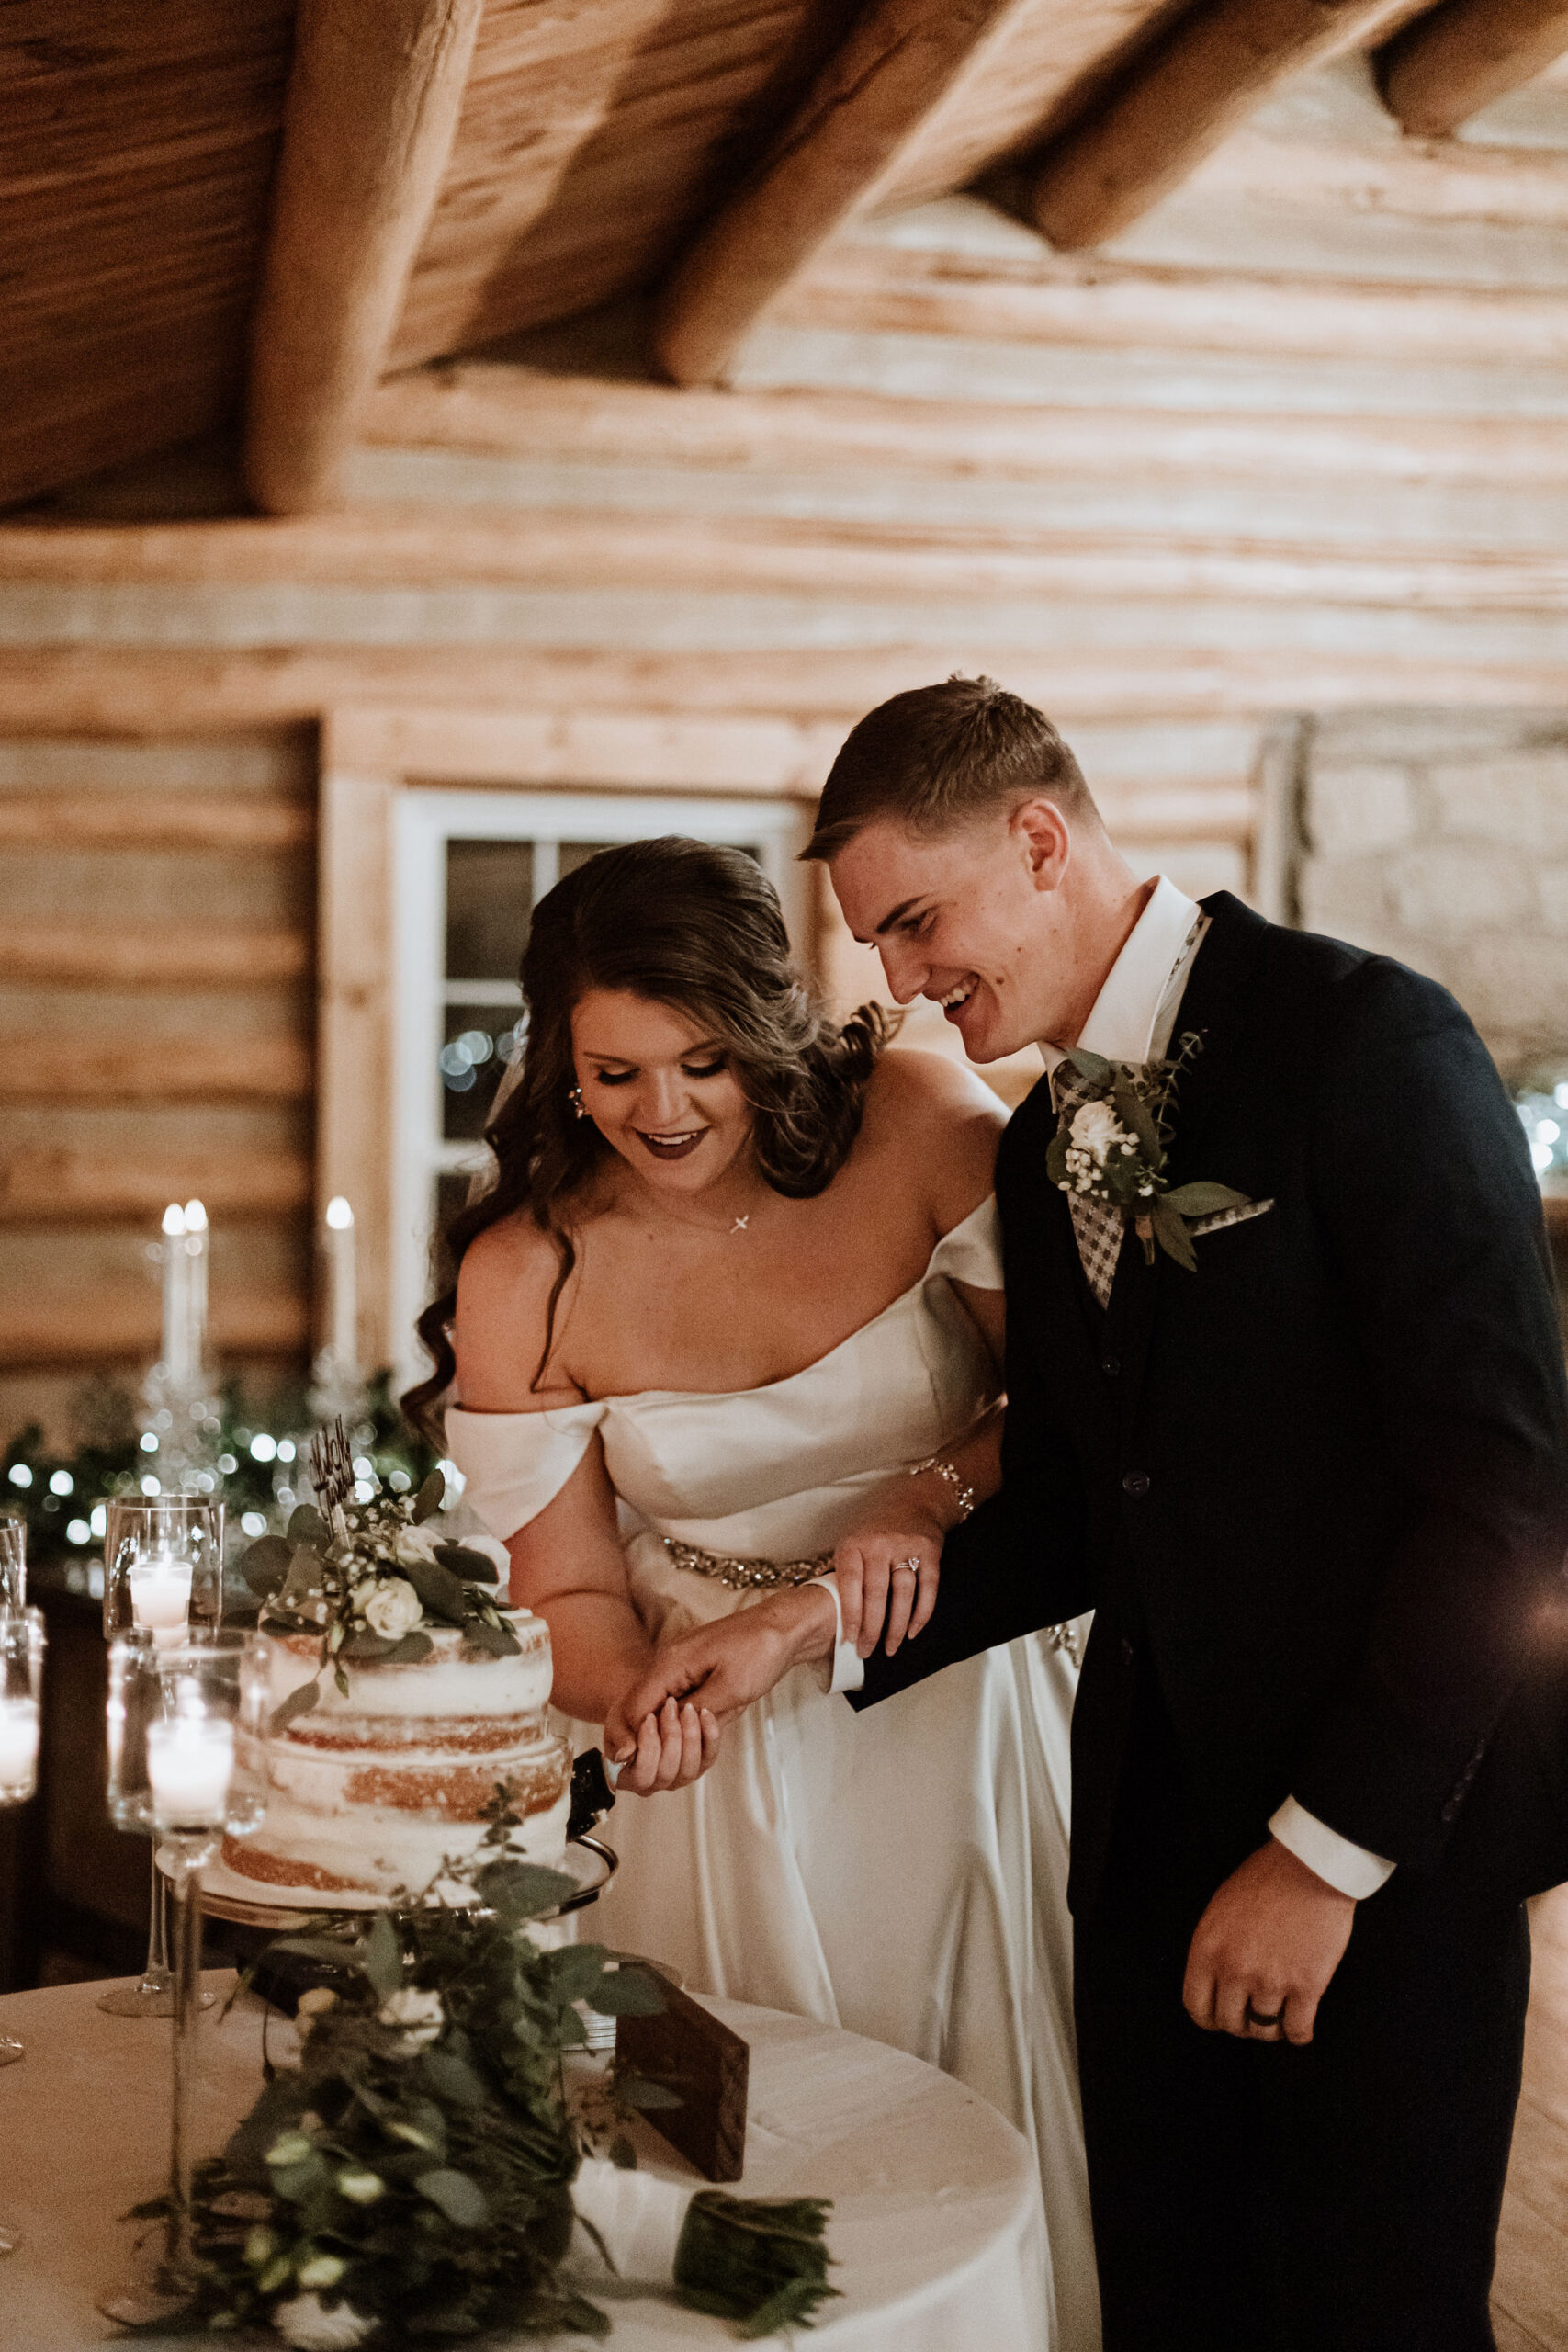 Bride and groom cut cake in cabin